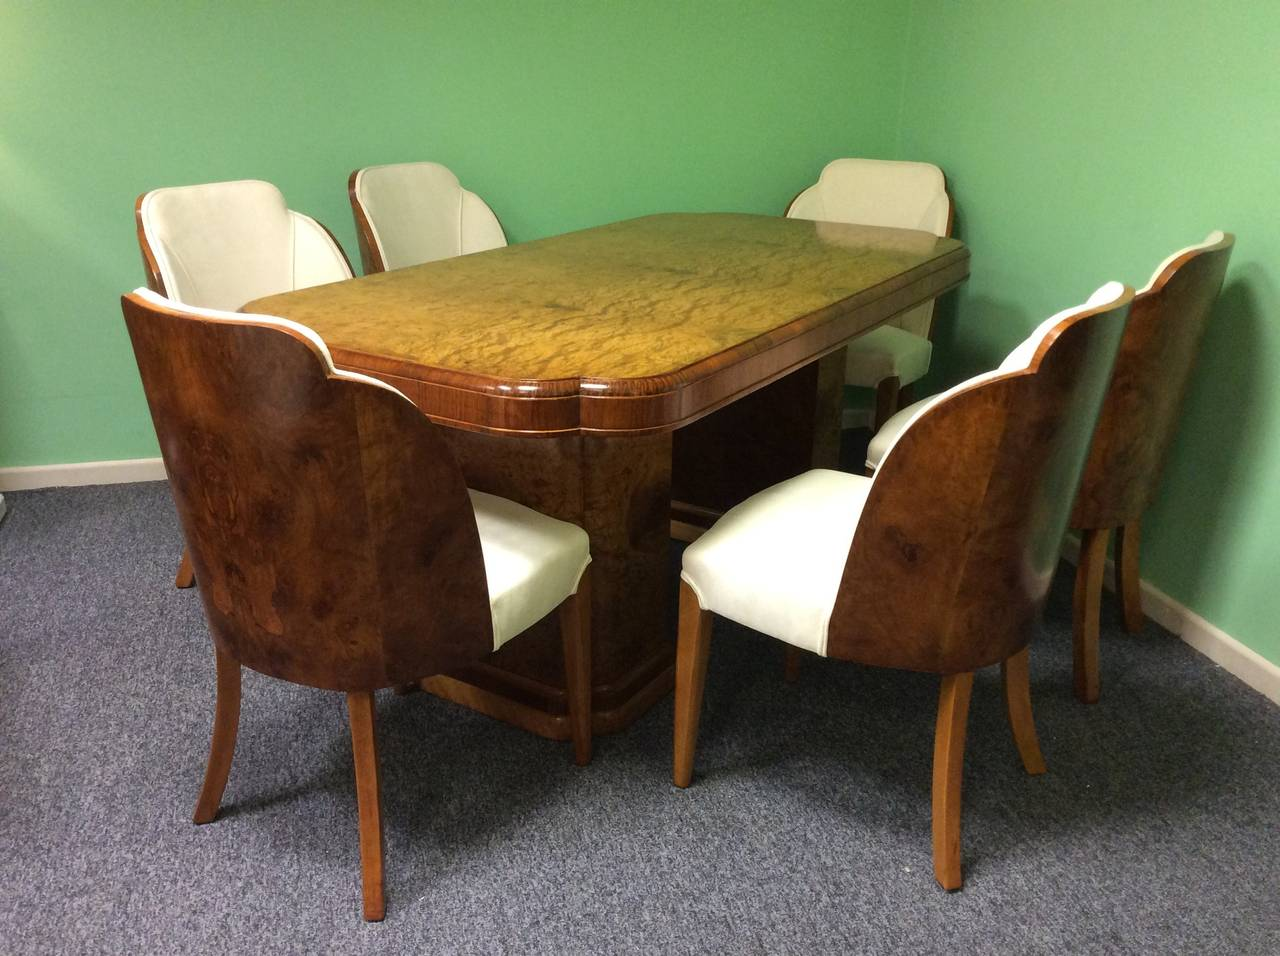 Art deco dining table and six chairs by harry and lou epstein at 1stdibs - Epstein art deco furniture ...